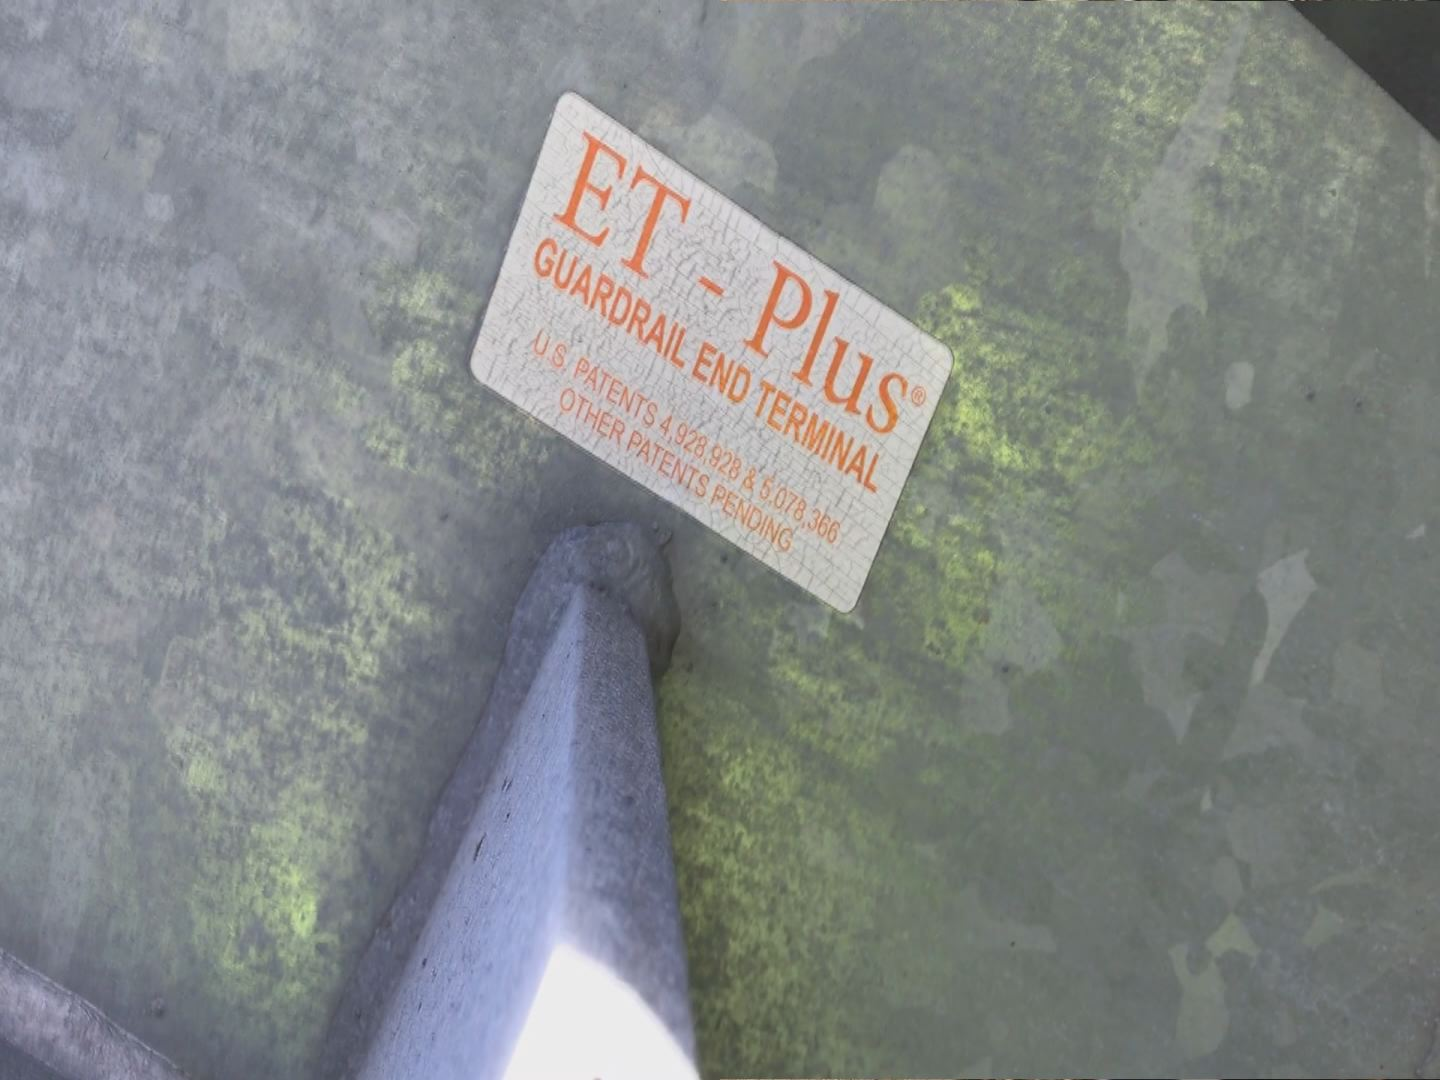 The ET Plus terminal with a four inch metal channel has been removed from the approved list in Tennessee, but TDOT says it still meets federal safety guidelines.